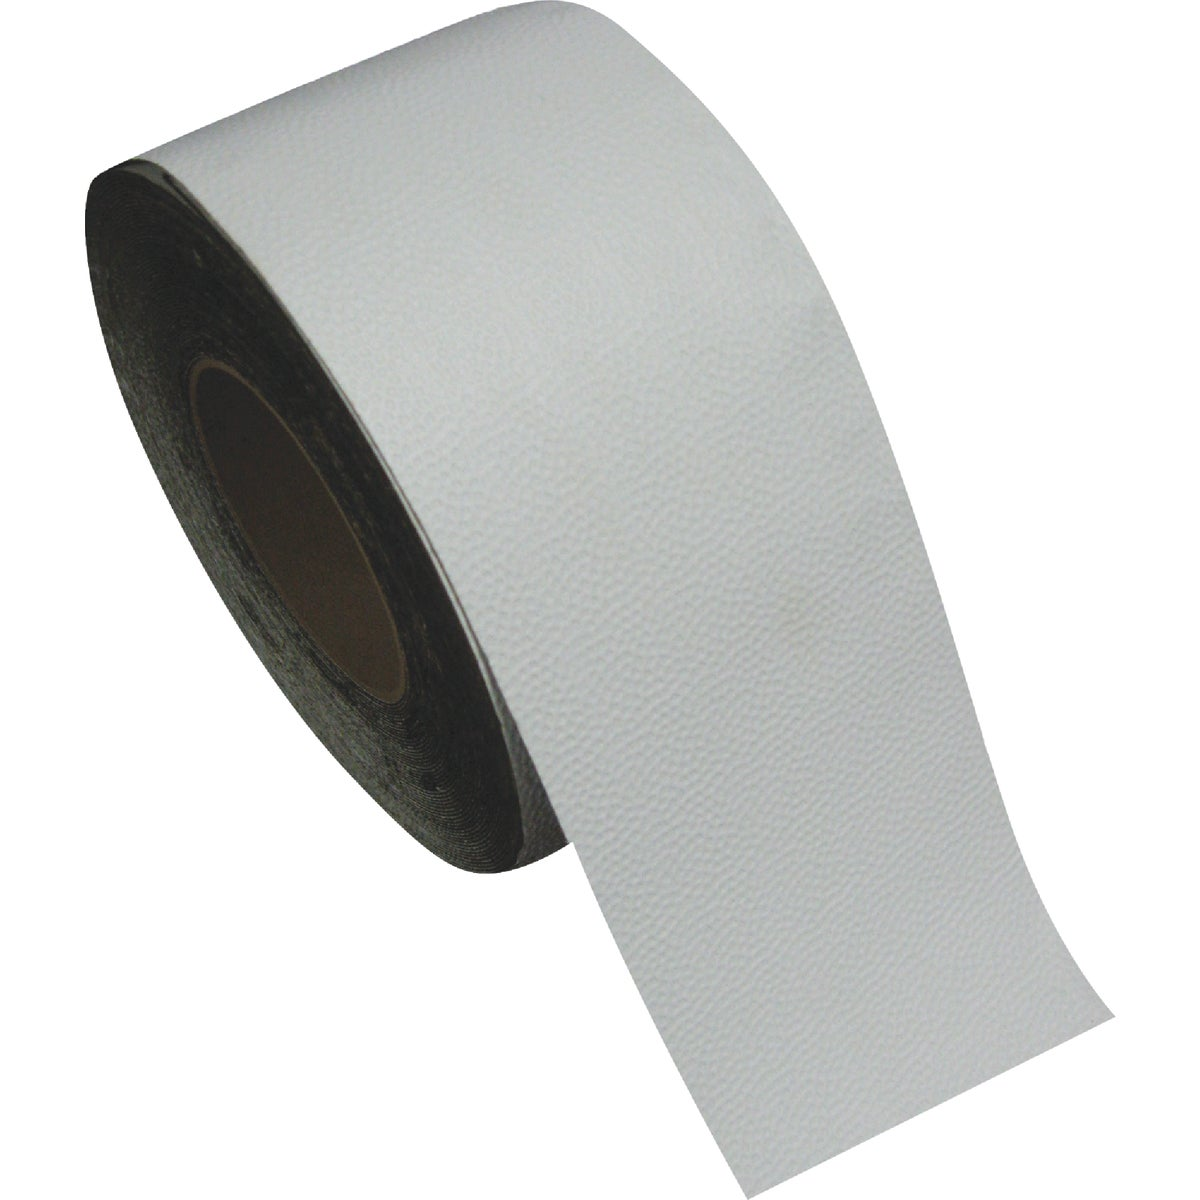 "6""X75' WINDOW SEAL TAPE - 45W306 by M F M Bldg Prod Corp"